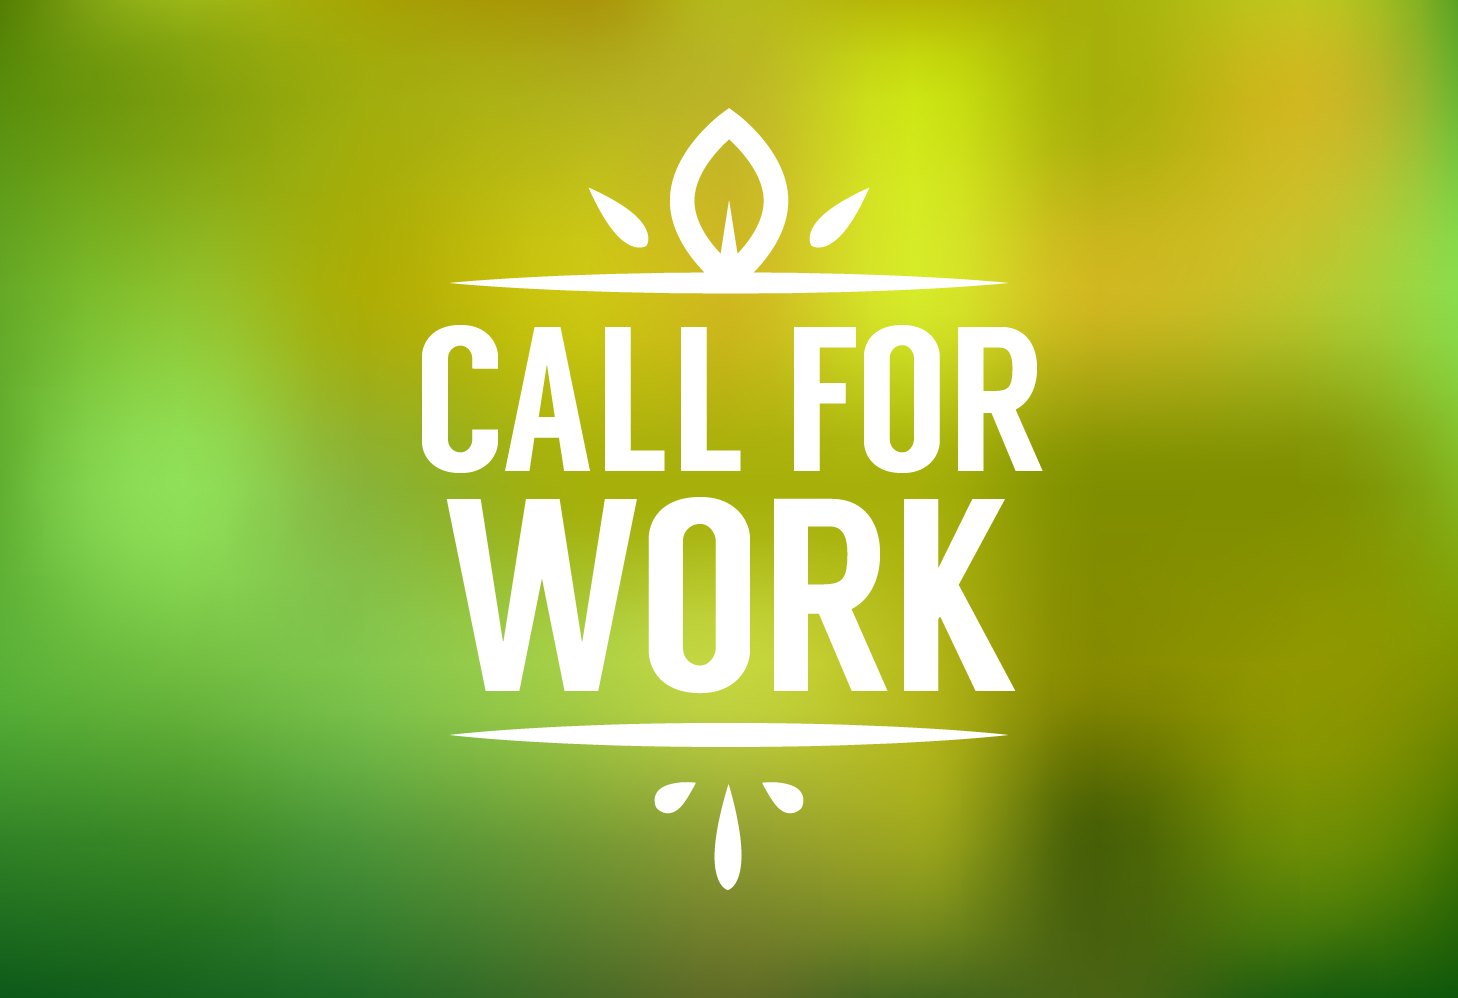 Call for work